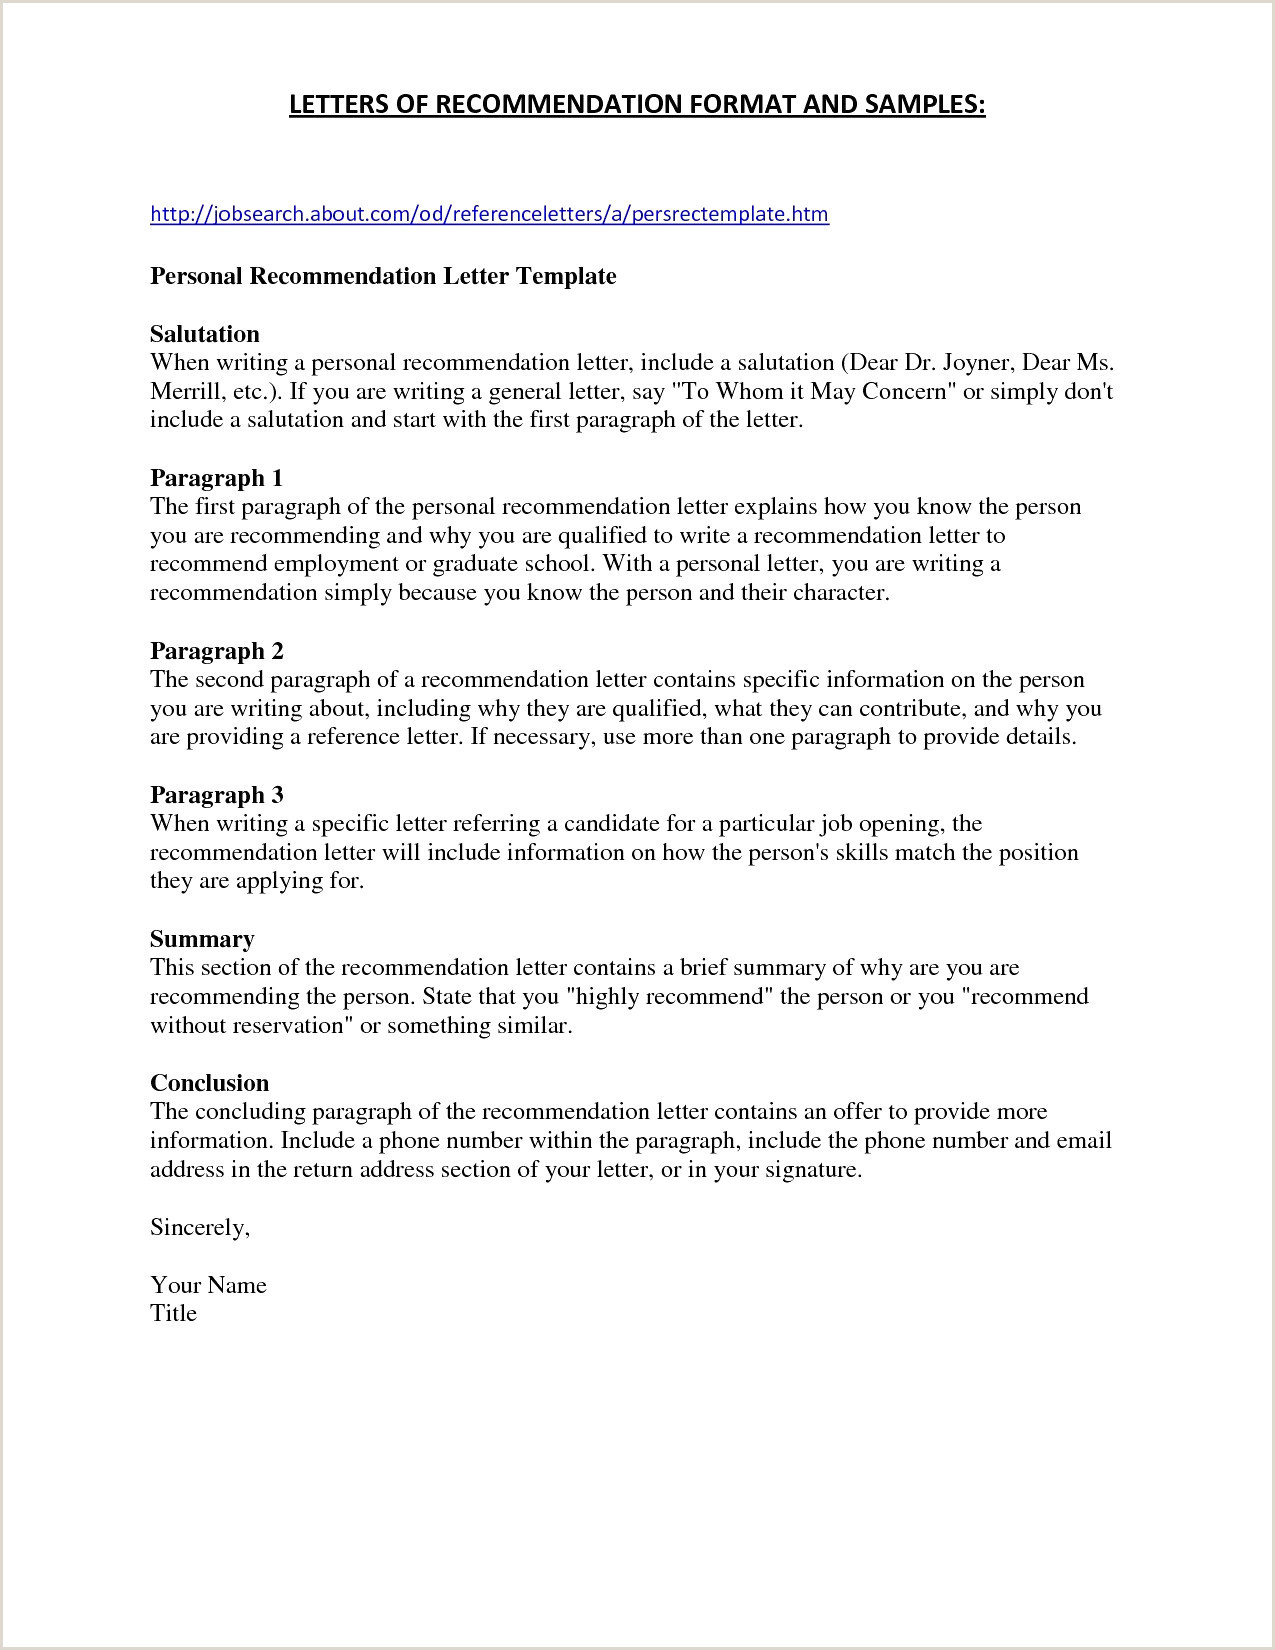 Resumes for Mental Health Counselors 29 Elegant Mental Health Counselor Resume Cover Letter